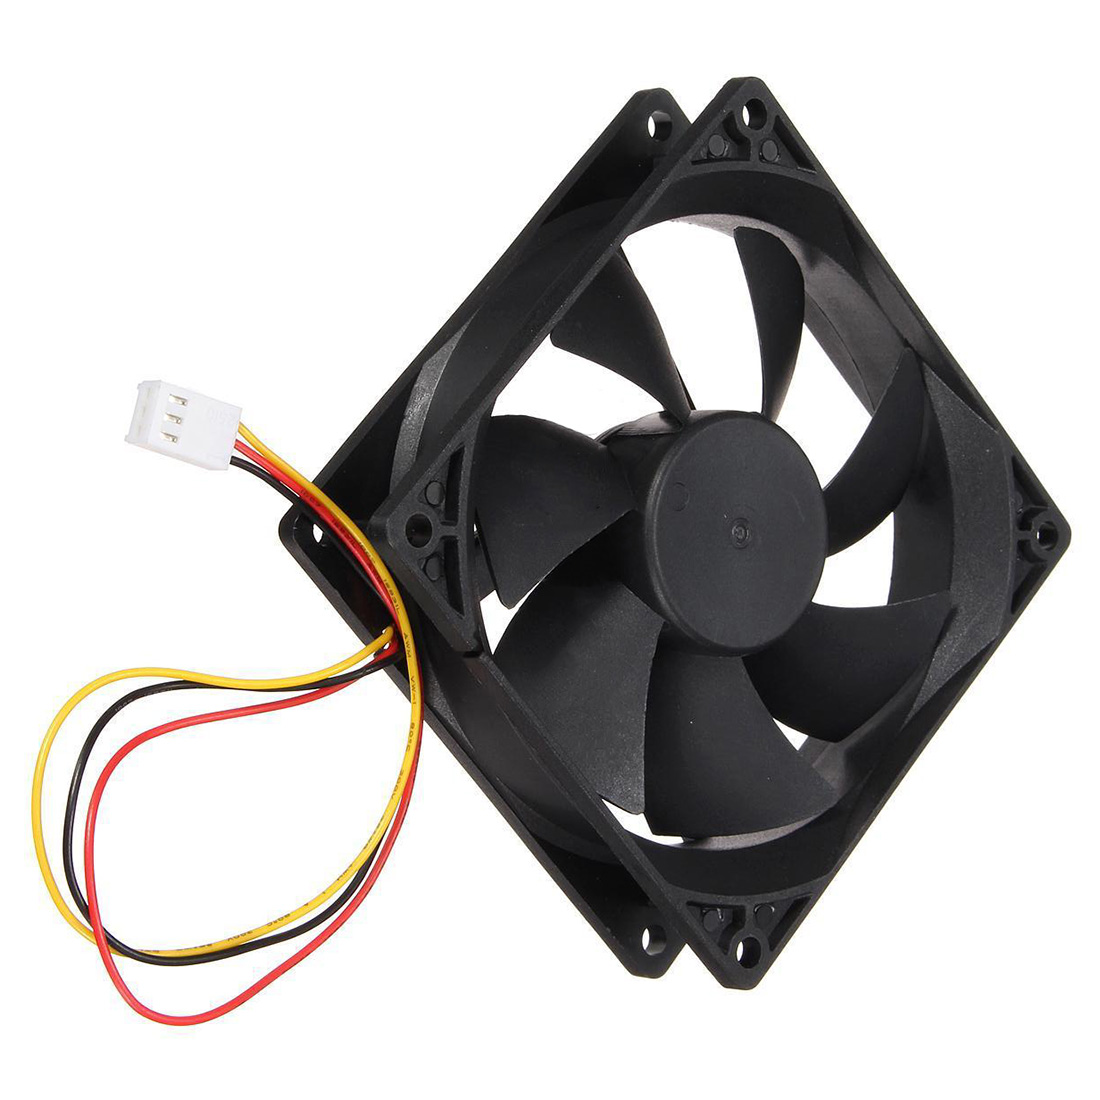 3 Pin 90mm 25mm Cooler Fan Heatsink Cooling Radiator For Computer PC CPU 12V computer cooler radiator with heatsink heatpipe cooling fan for asus gtx460 550ti 560 hd6790 grahics card vga replacement